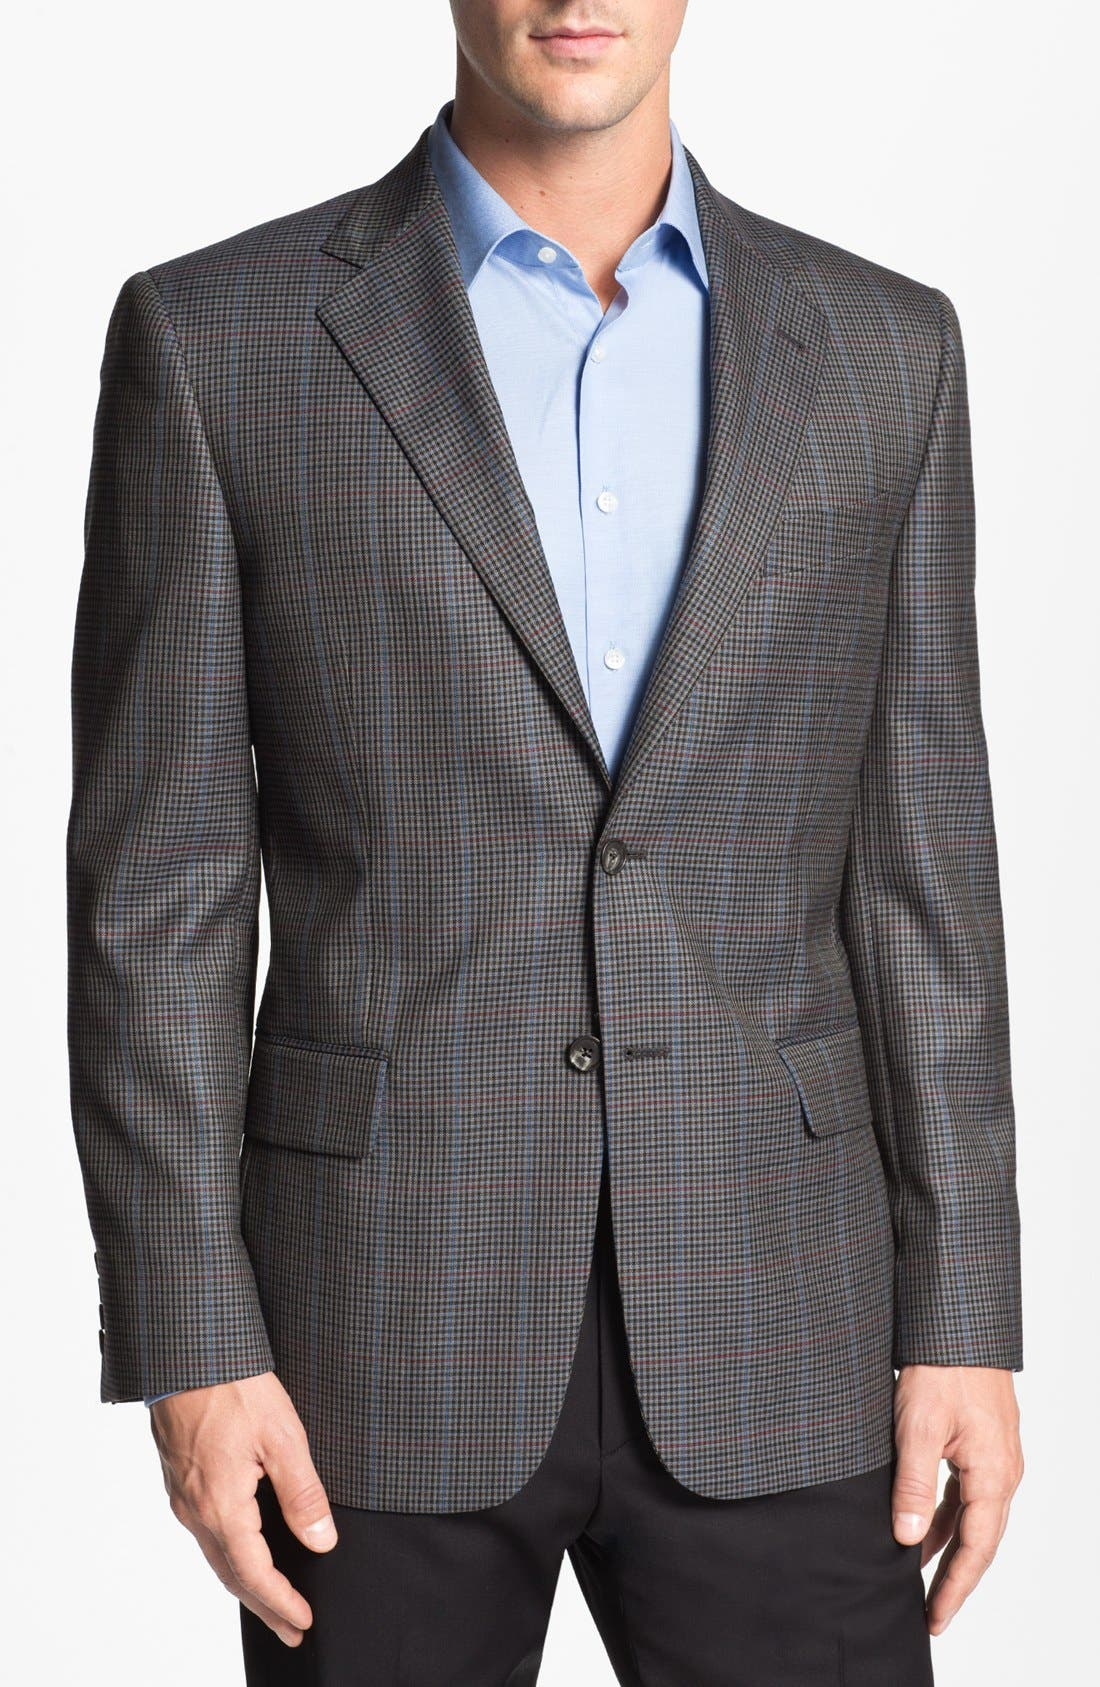 Main Image - Joseph Abboud 'Signature Silver' Check Wool Sportcoat